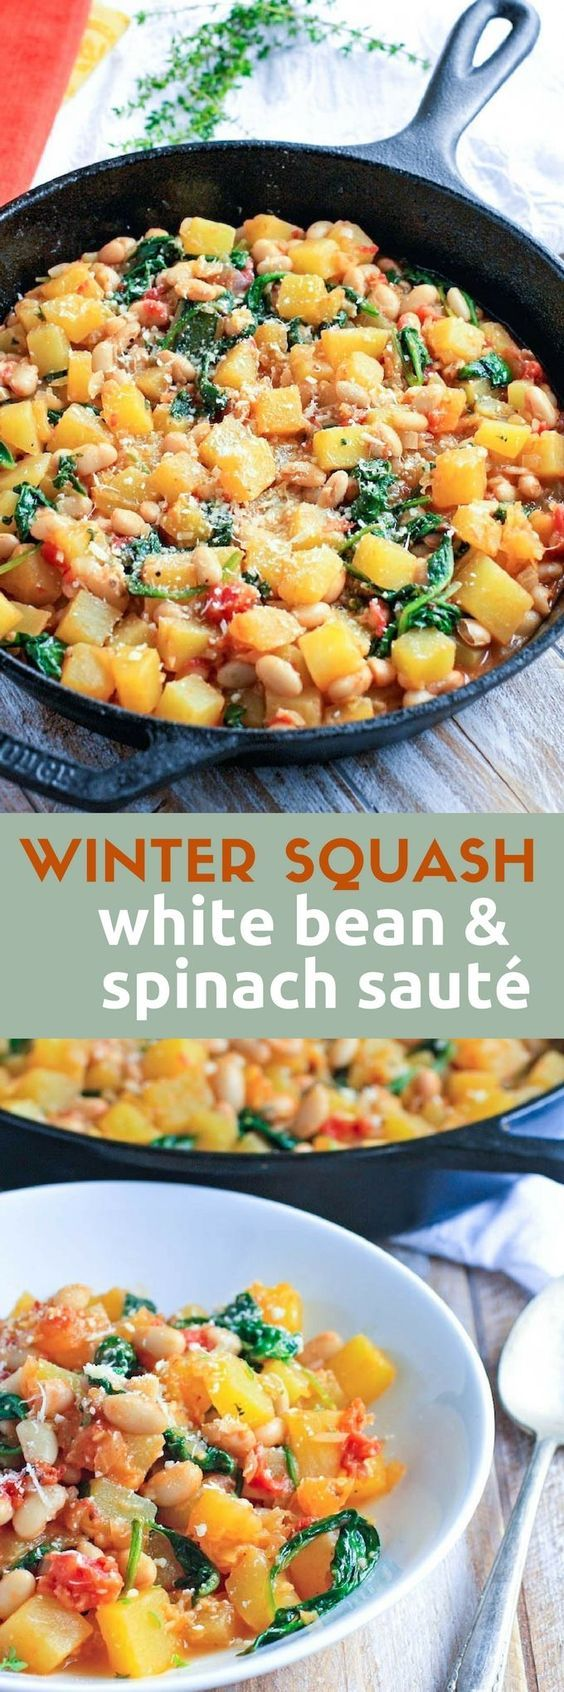 Winter Squash, White Bean & Spinach Sauté is a tasty meal perfect on a cold night. This winter squash dish is ideal for a Meatless Monday meal. #squash #GlutenFree #vegetarianrecipes